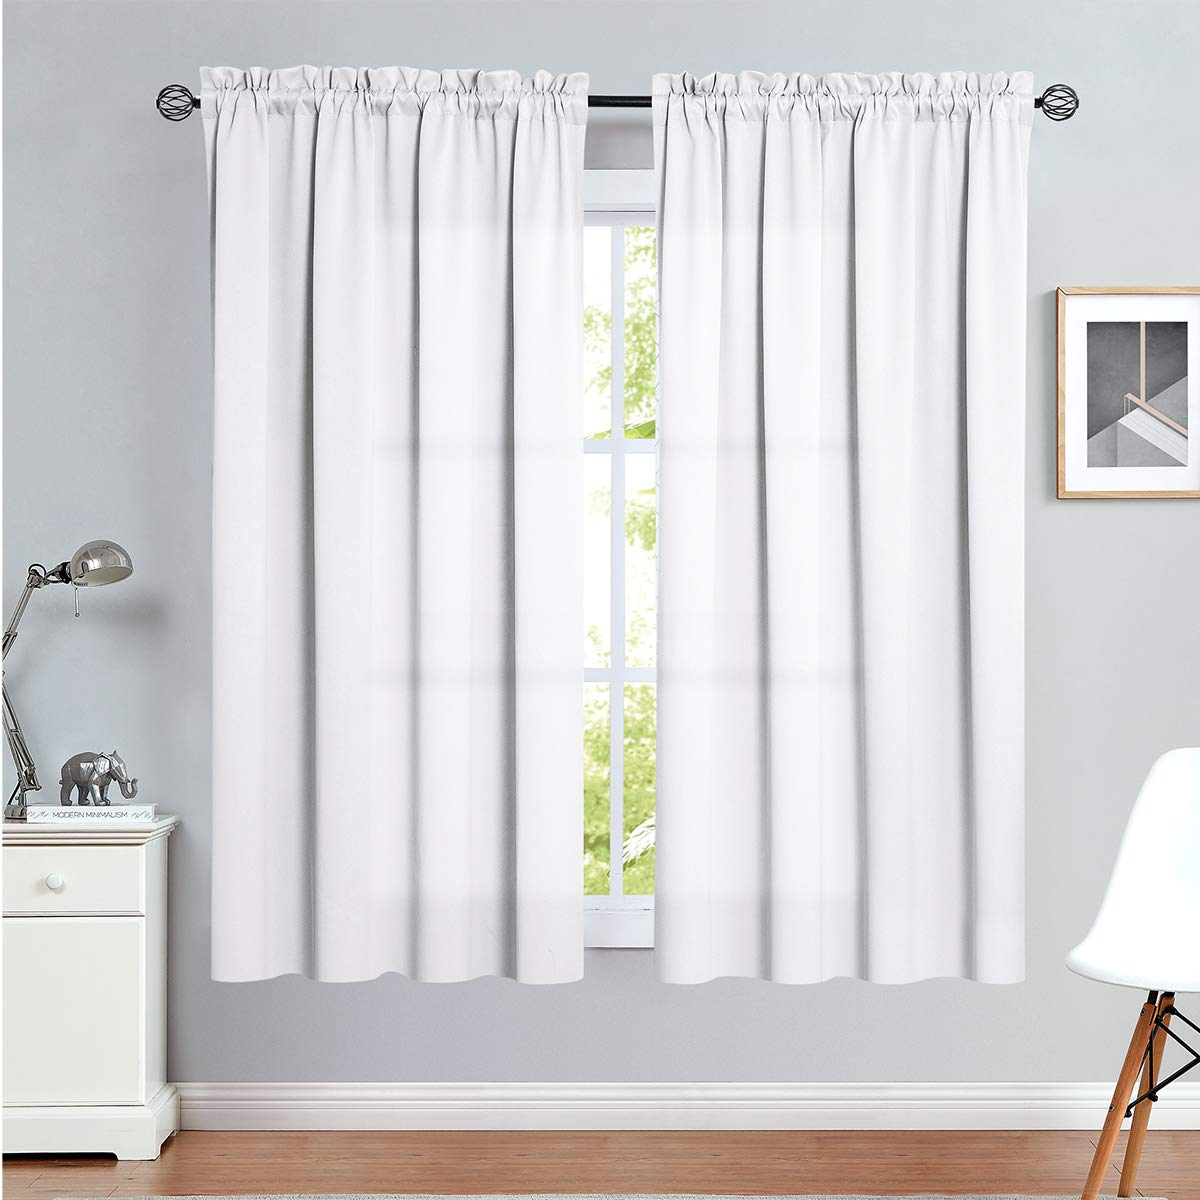 Amazon Com Vangao Rod Pocket Curtains White 72 Inches Long Drapes For Living Room Darkening Moderate Blackout Window Treatment For Bedroom Triple Weave 2 Panels Kitchen Dining